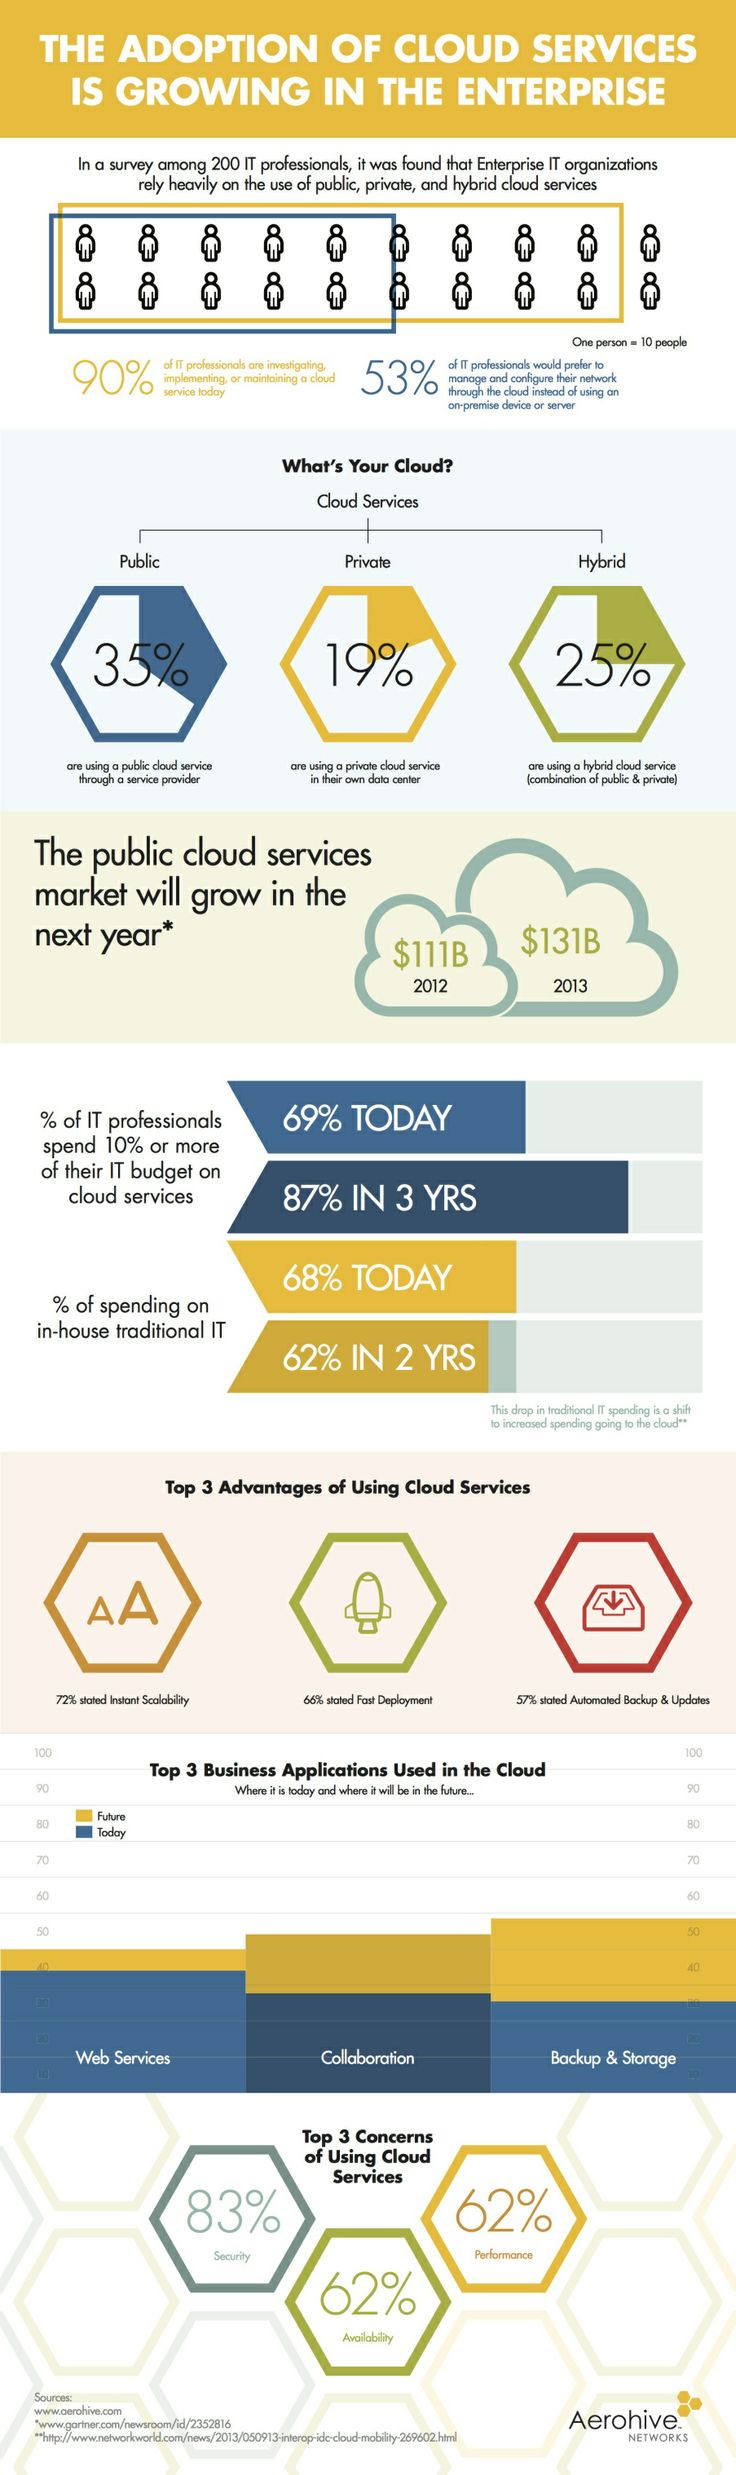 The adoption of cloud services is growing in the enterprise #infographic